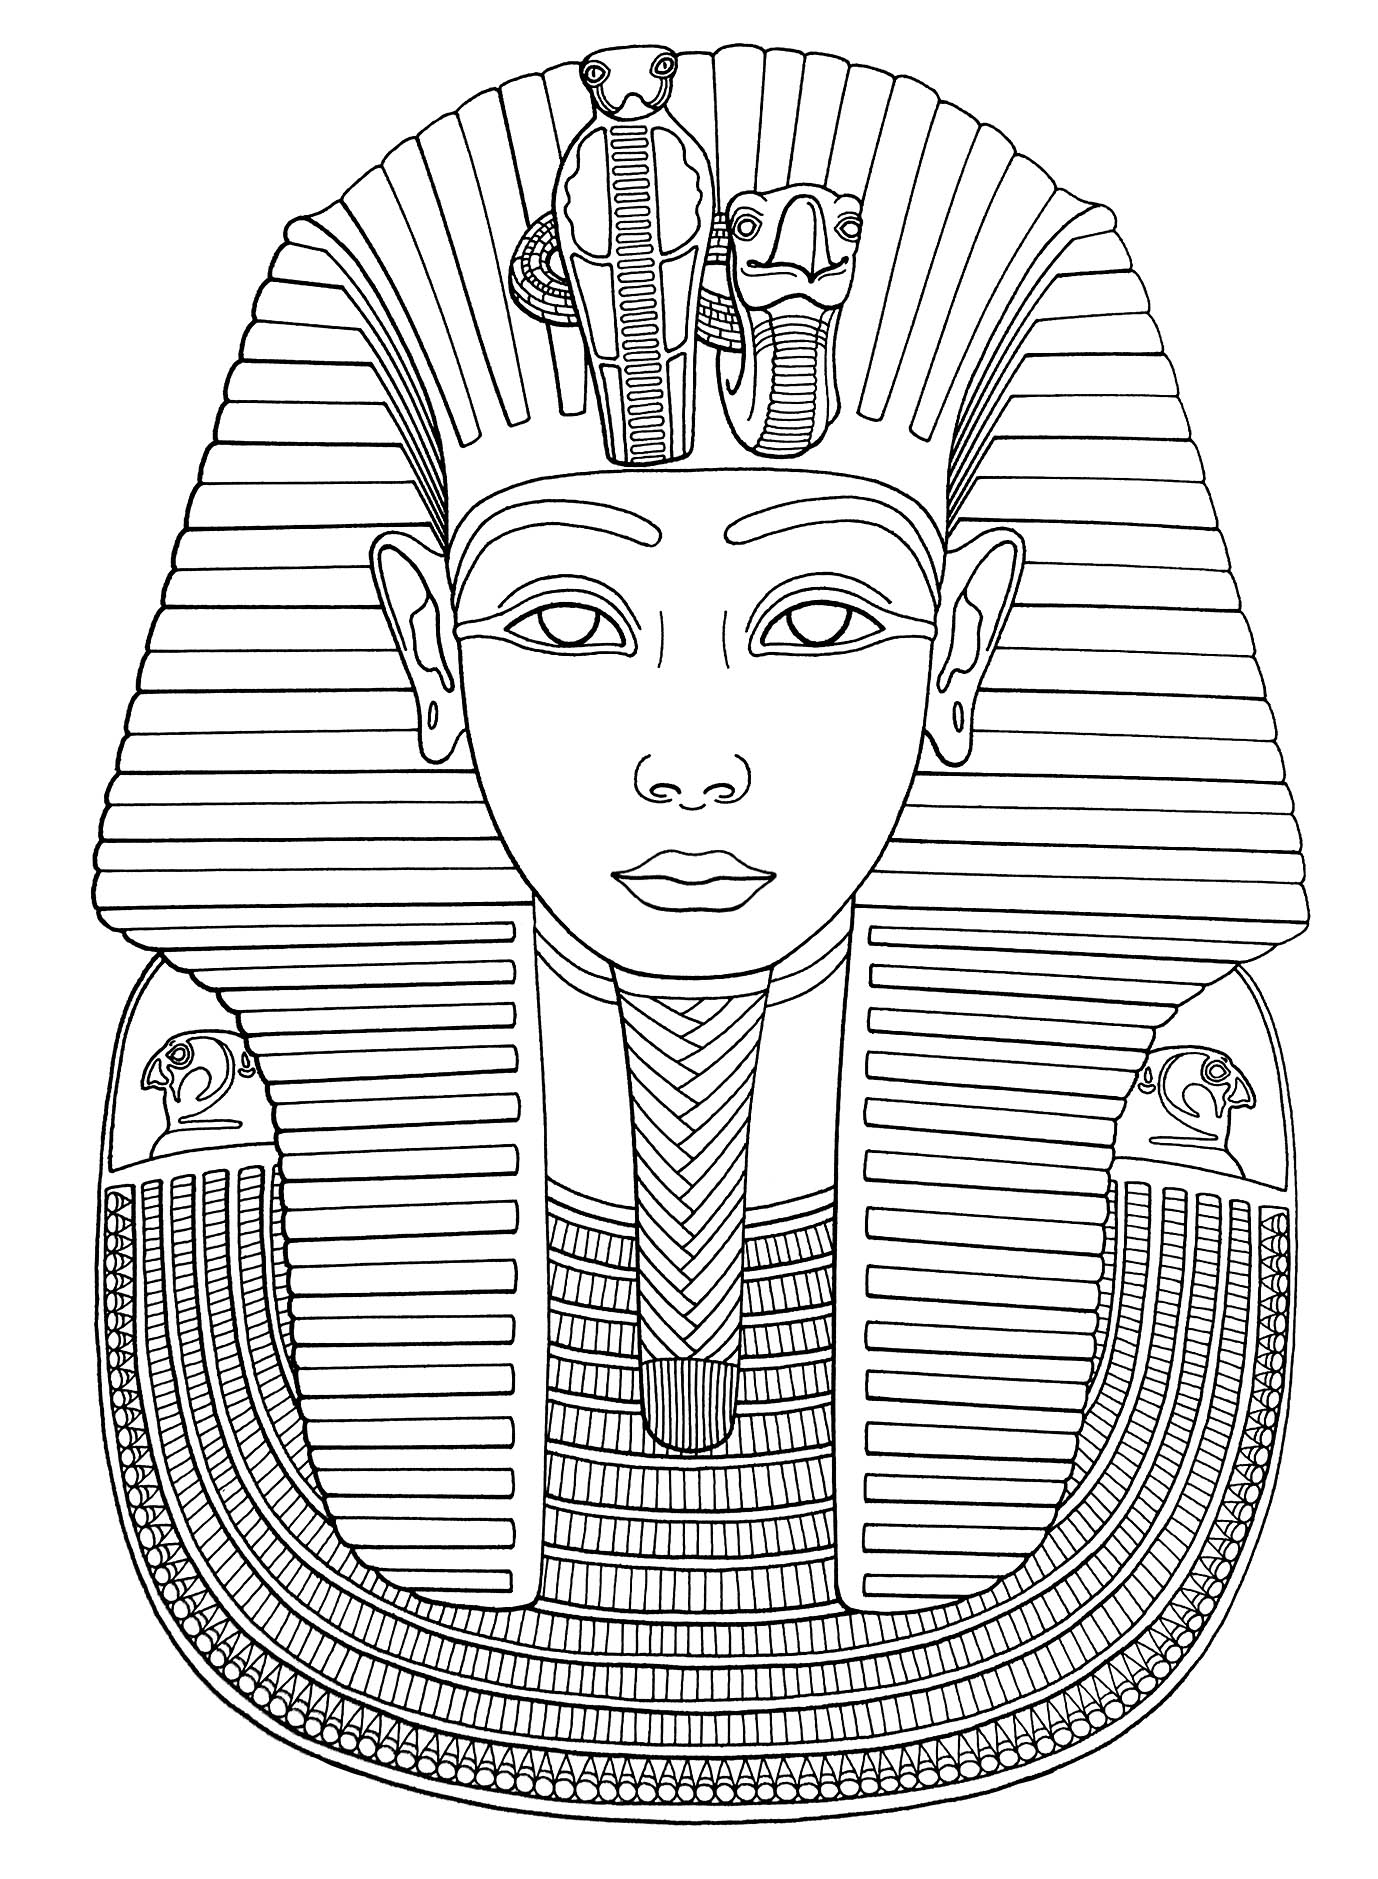 🎨 Egypt 3 - Kizi Free 2020 Printable Coloring Pages For Children ... | 1879x1378